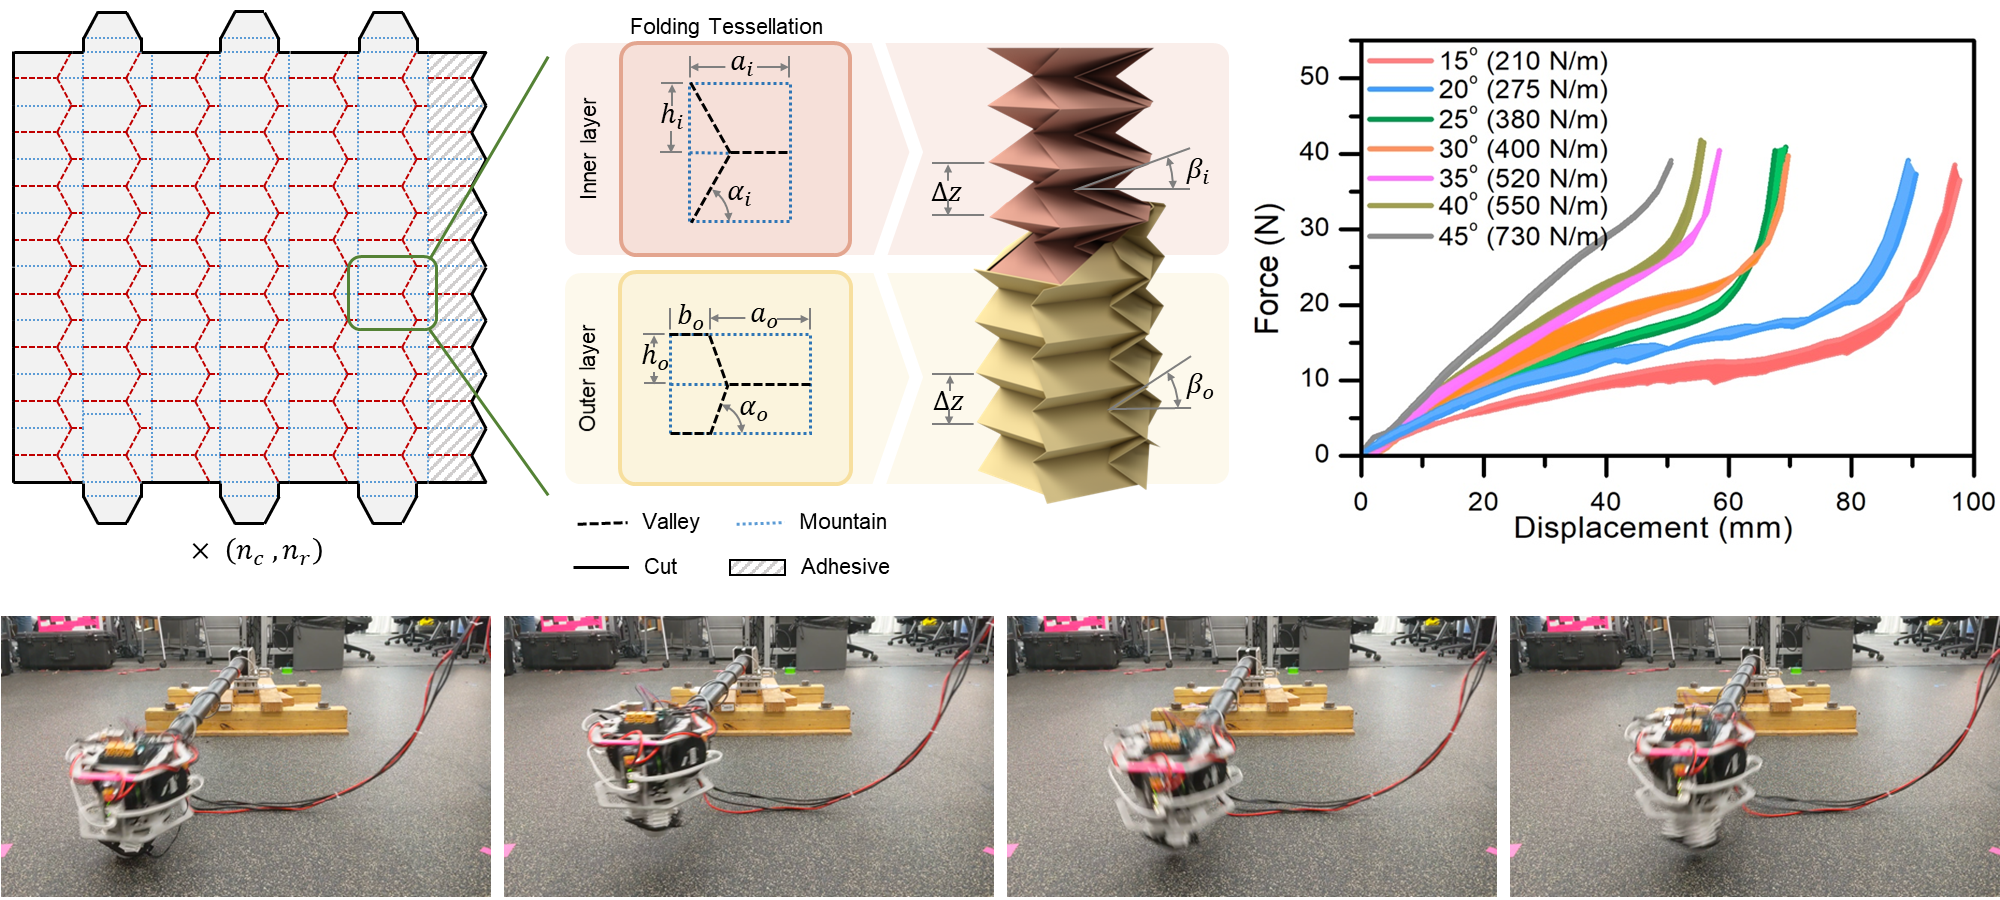 Demonstrations of the fold pattern as applied to a hopping robot requiring energy storage up to 1.23 J.